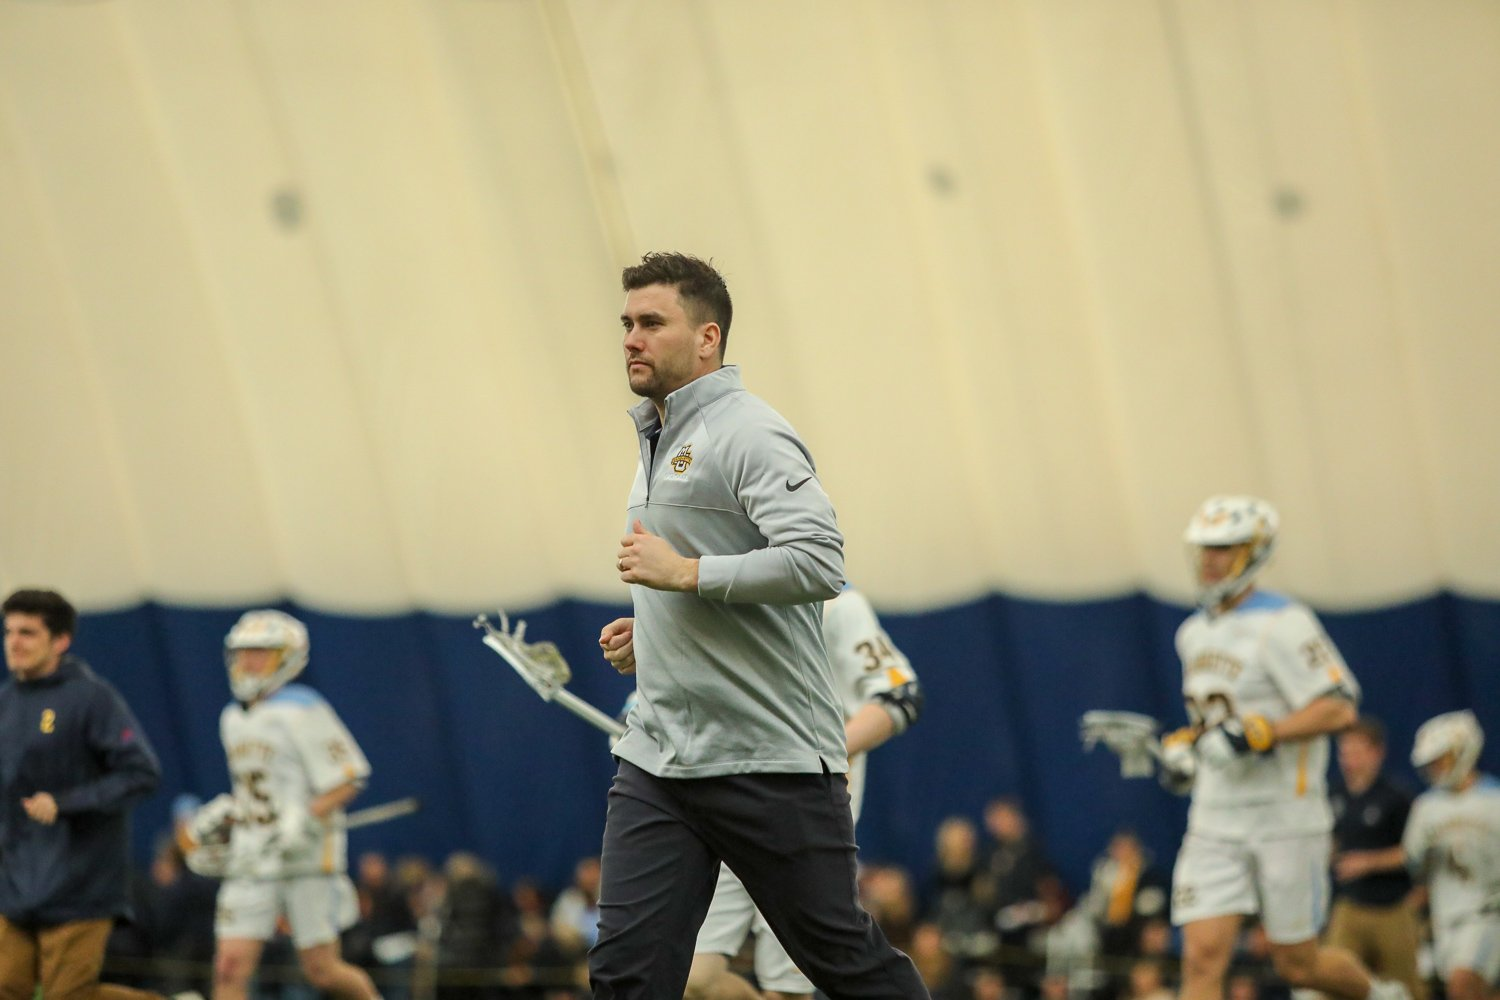 Ex-West Genesee star takes over Hobart lacrosse offense